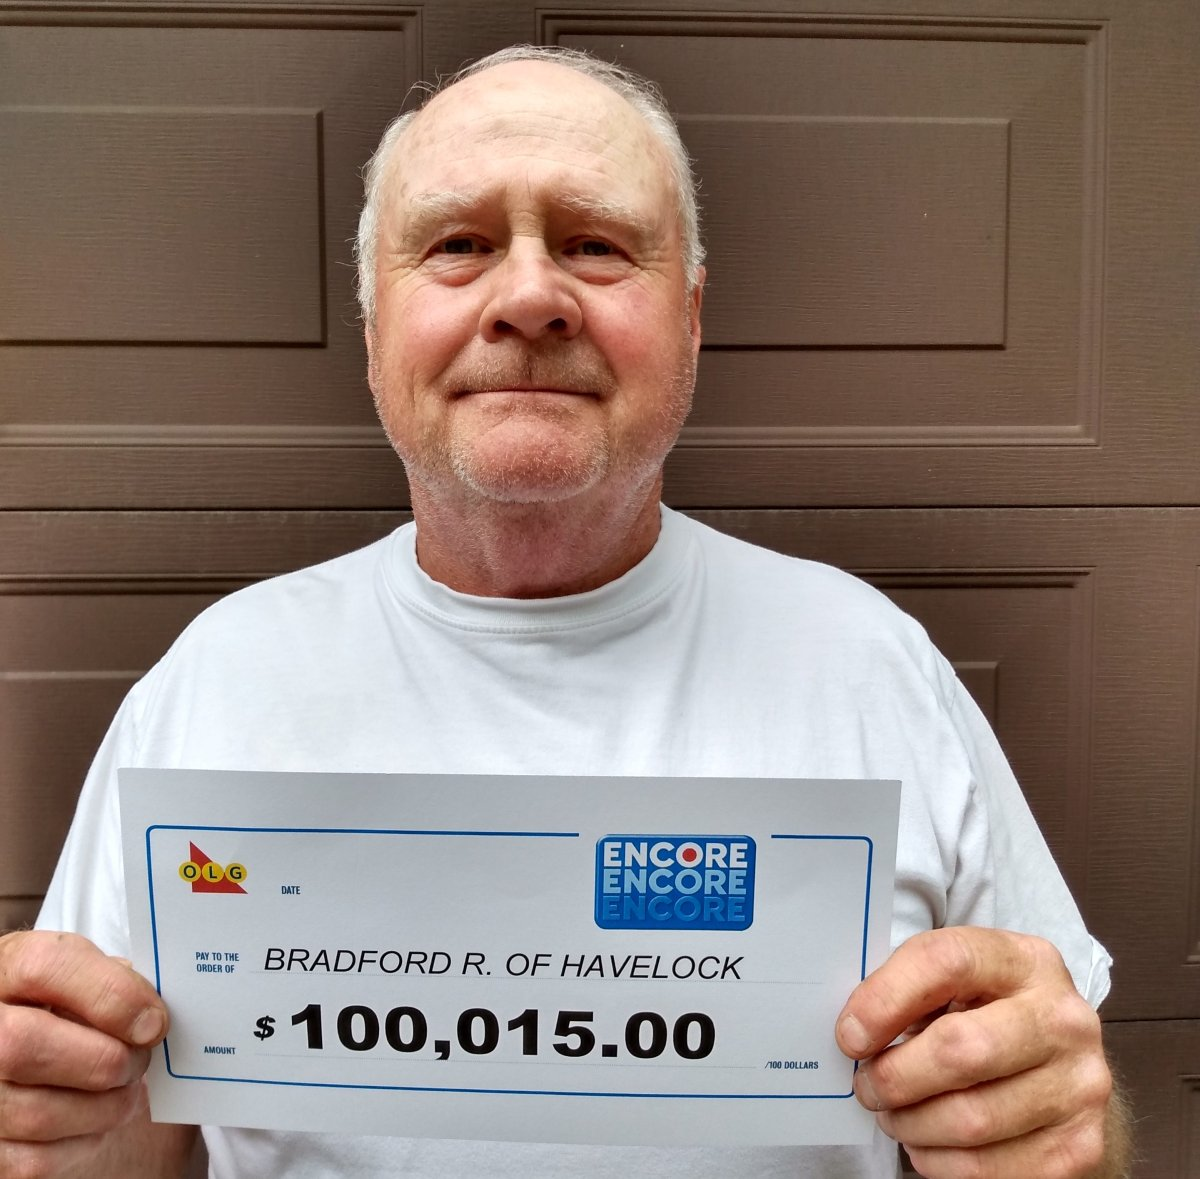 A Havelock man won $100,015 on his 70th birthday in March.